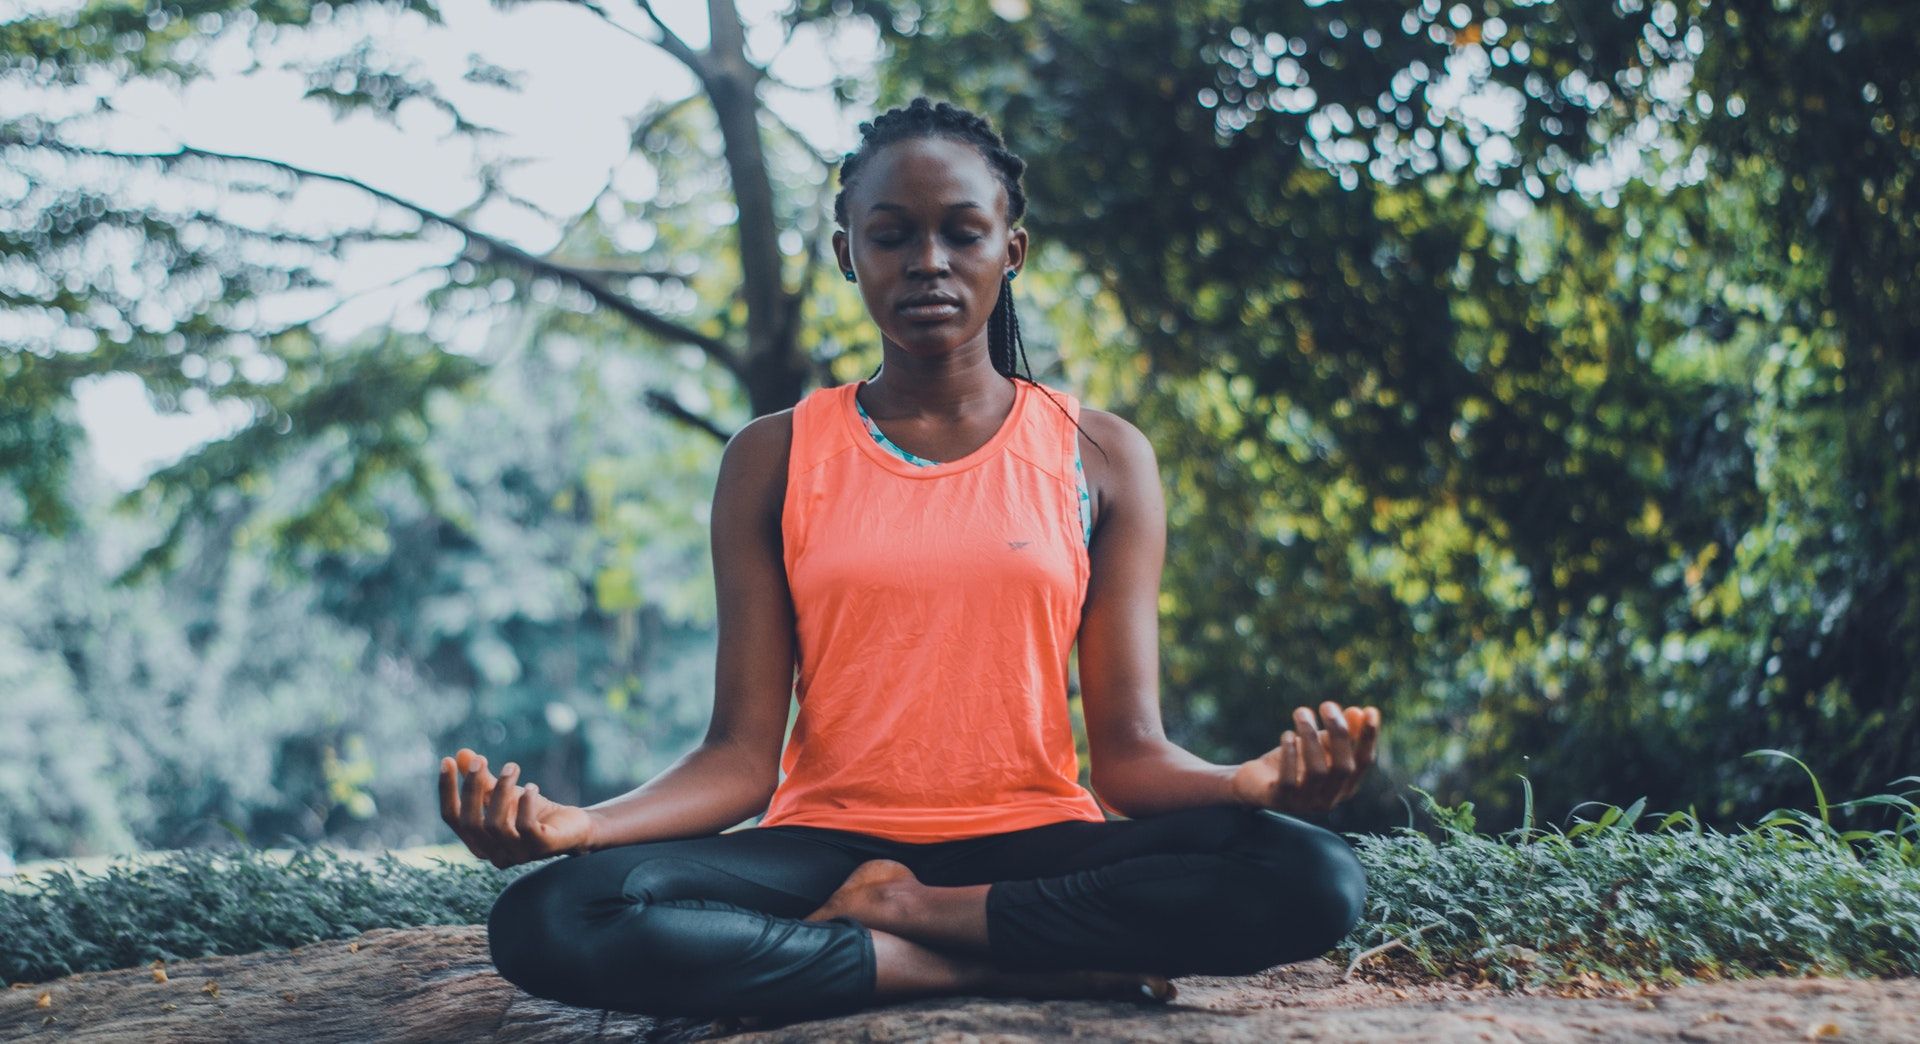 A Black woman with braids wearing an orange top and black yoga pants while mediating outside.